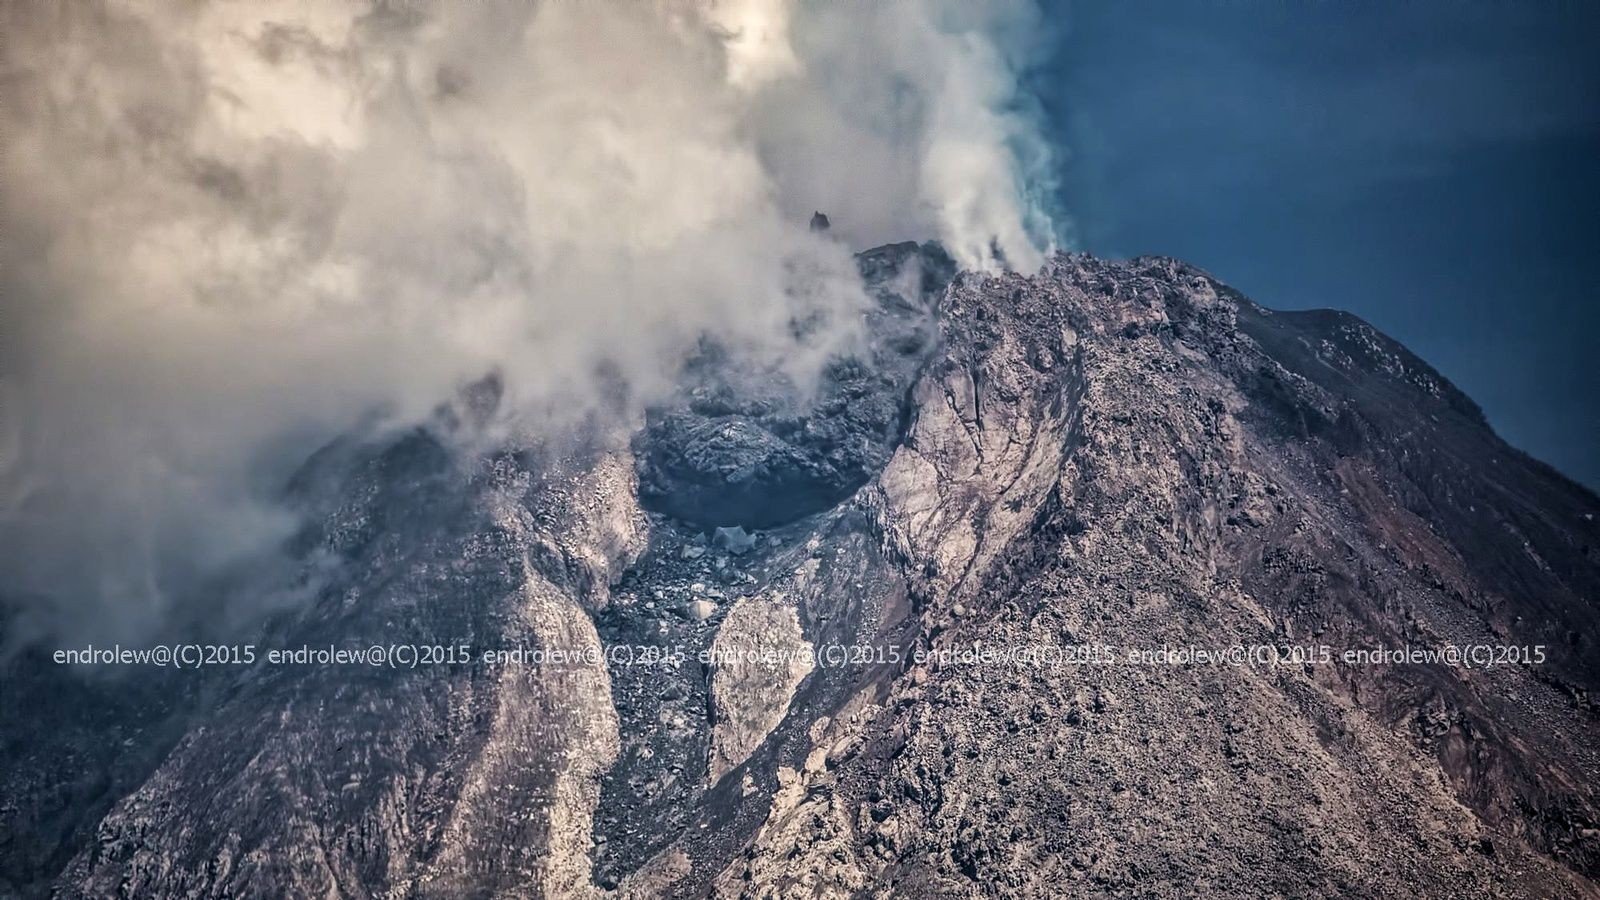 The new dome Sinabung March 24, 2015 / 10:02 - photo endrolew @